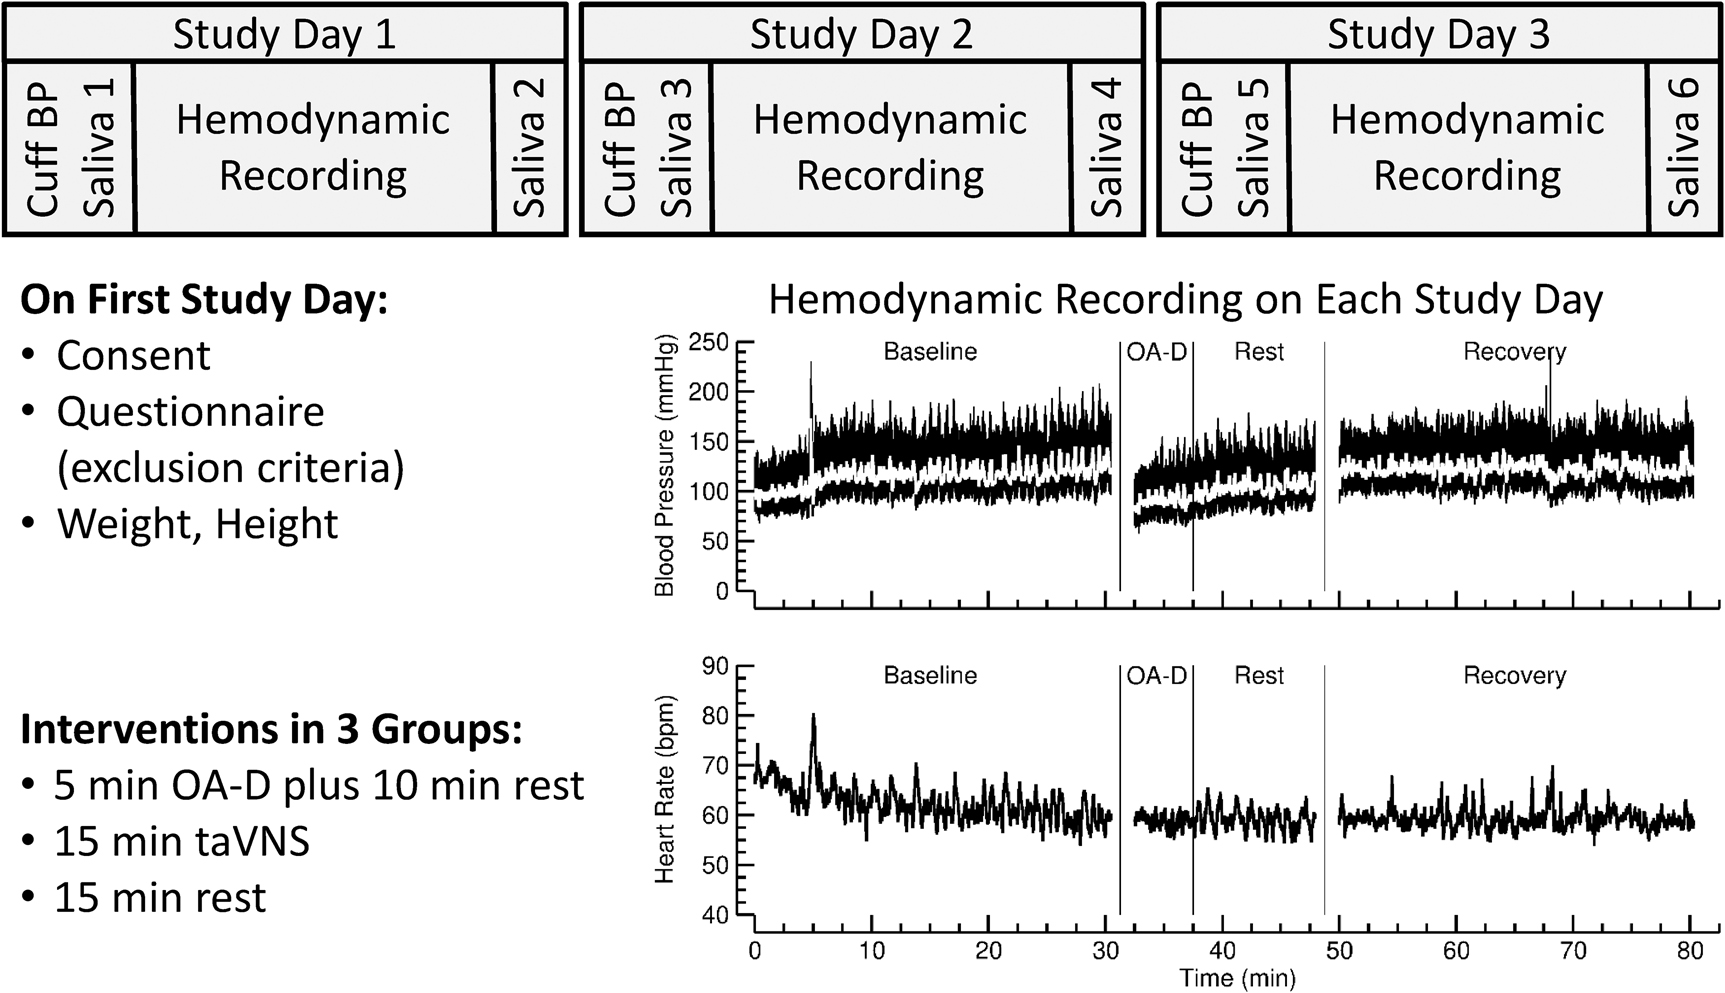 Figure1: Experimental protocol. The study consisted of three study days. At the beginning of the first study day, written consent was obtained, potential exclusion criteria were assessed through a questionnaire, and height, weight, and arm cuff blood pressure were measured. On each study, day saliva samples were collected at the beginning and end of the study day, for a total of six saliva samples from each participant. Hemodynamic recordings of arterial blood pressure (finger plethysmography) and heart rate (ECG) were obtained on each study day. The experimental protocol during the hemodynamic recordings on each study day consisted of a 30min baseline recording, a 15min intervention, and a 30min recovery recording. In three experimental groups, the interventions consisted of either 5min of occipitoatlantal decompression (OA-D) followed by 10min of rest (OA-D group), or 15min of transcutaneous auricular vagus nerve stimulation (taVNS group), or 15min of rest (control group). The shown example of the hemodynamic recording is from a participant in the OA-D group.